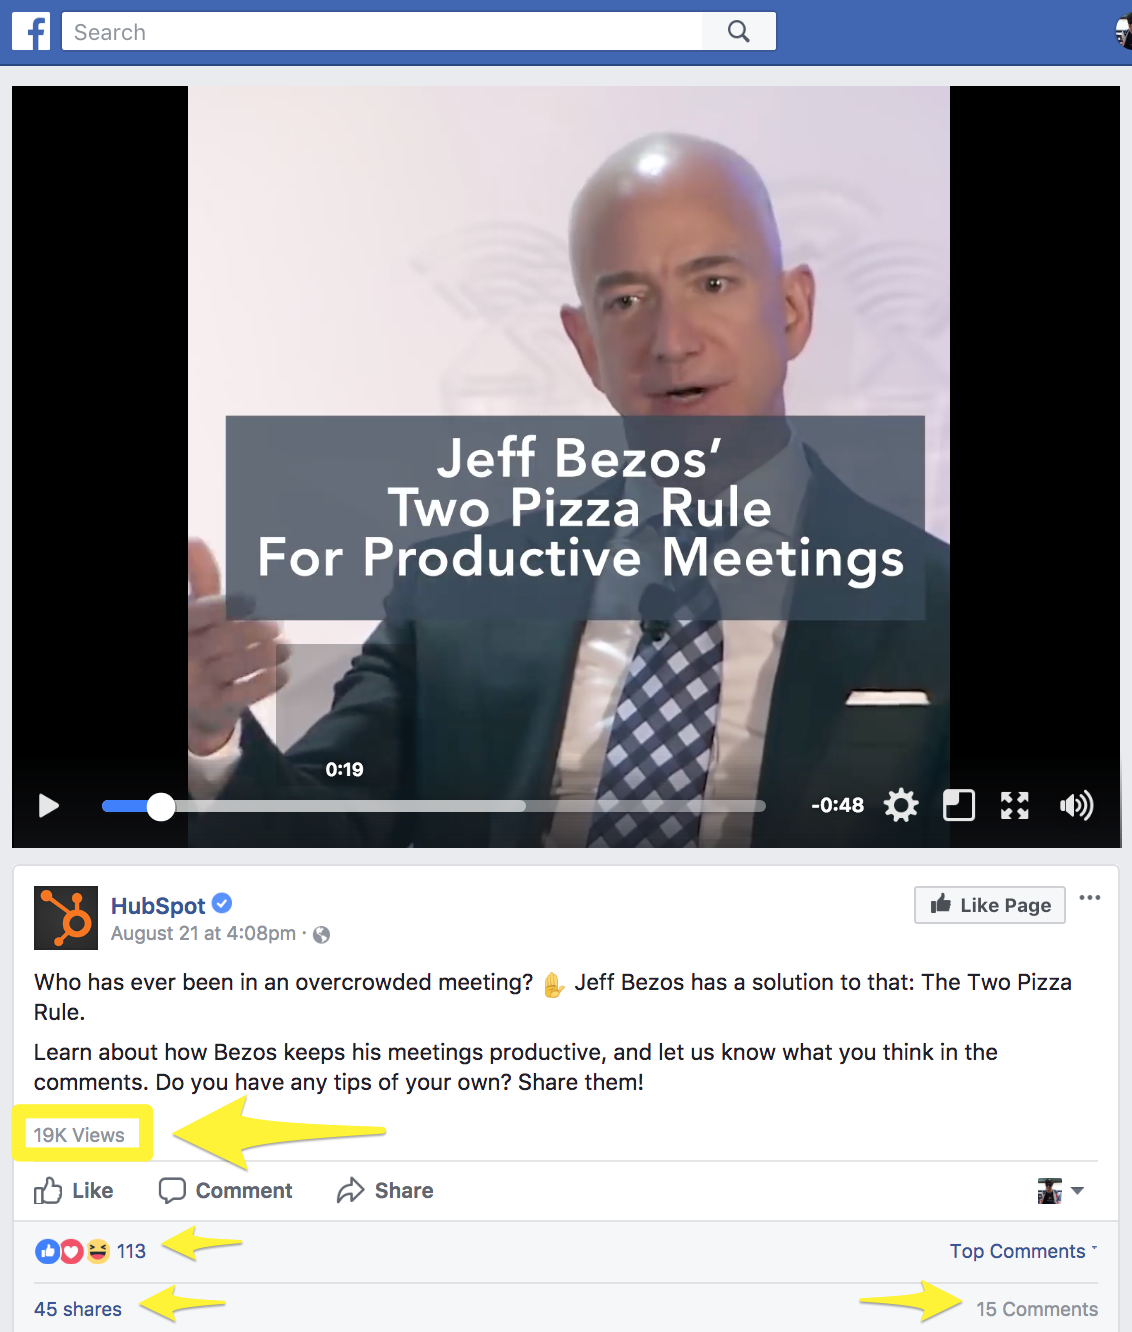 Screenshot showing a facebook video by hubspot